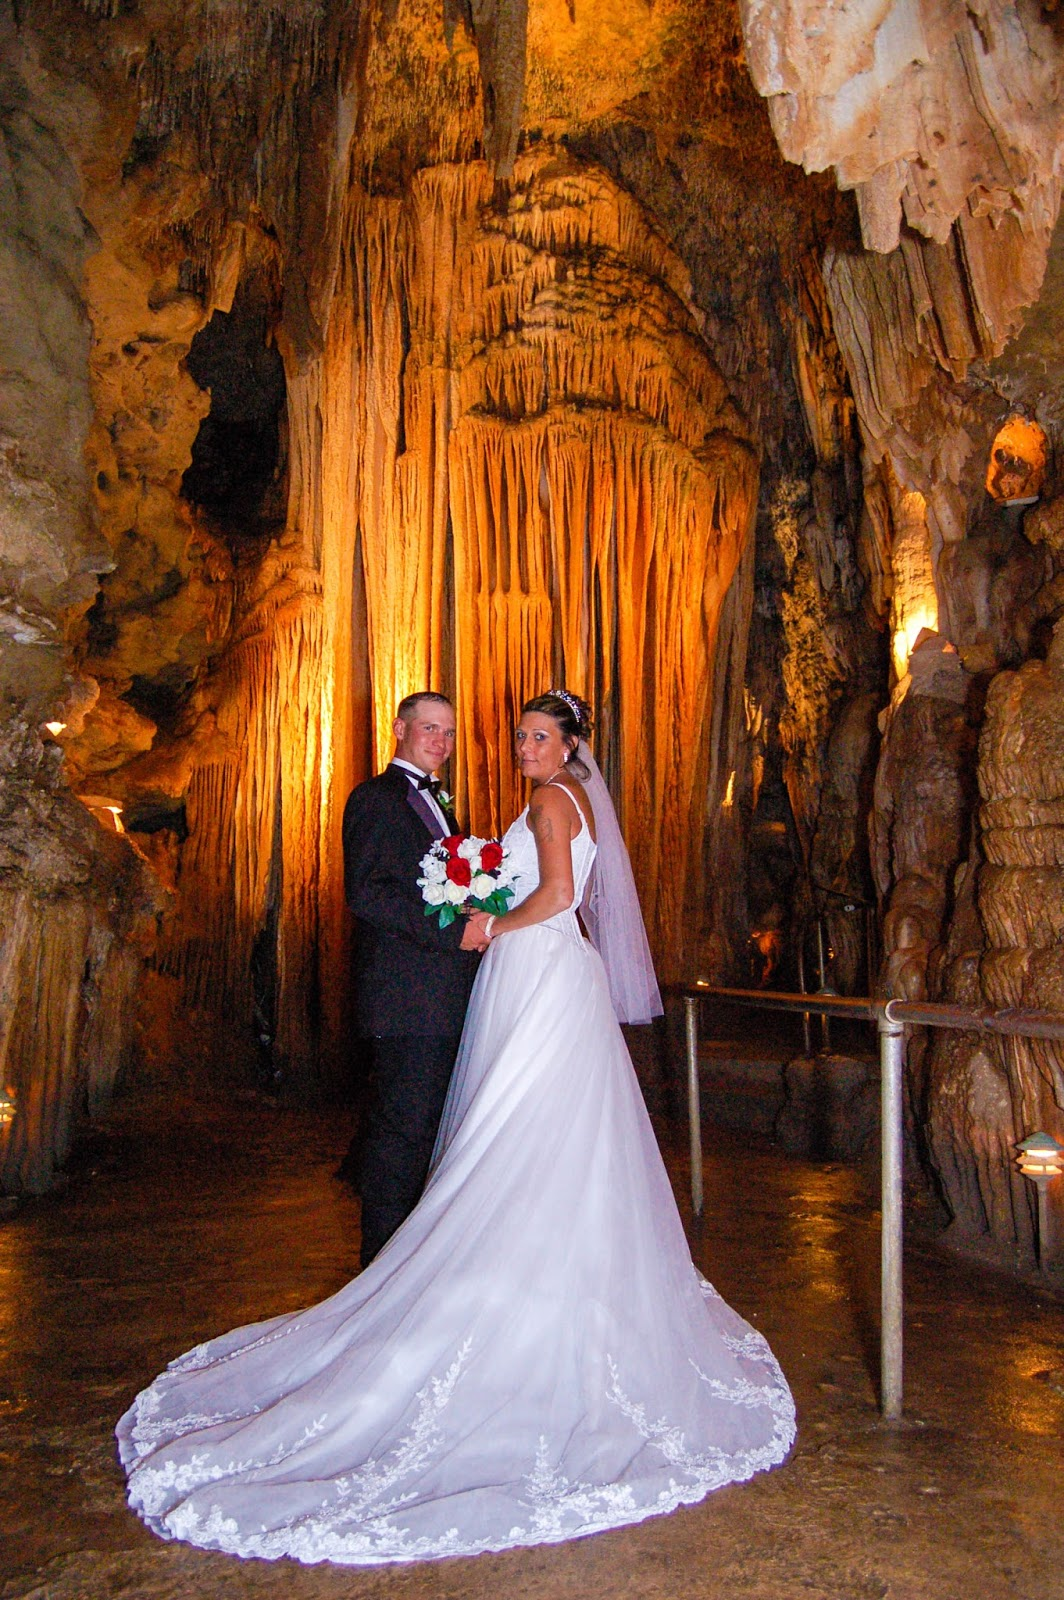 Bridal cave thunder mountain park get married in bridal cave bridal cave camdenton mo lake of the ozarks weddings junglespirit Image collections